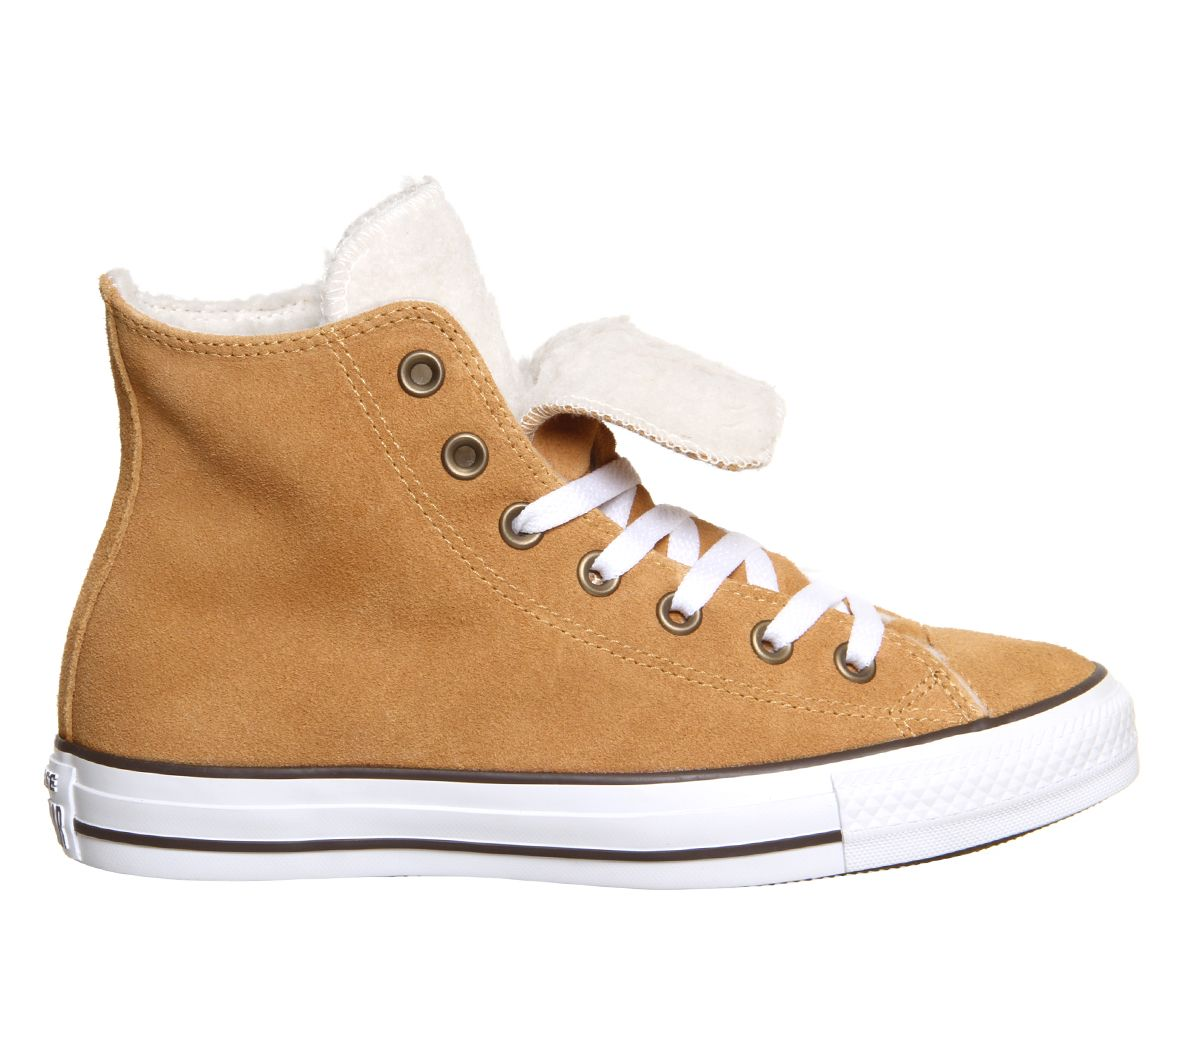 Converse All Star Hi Double Tongue Wheat Shearling Exclusive - Unisex Sports